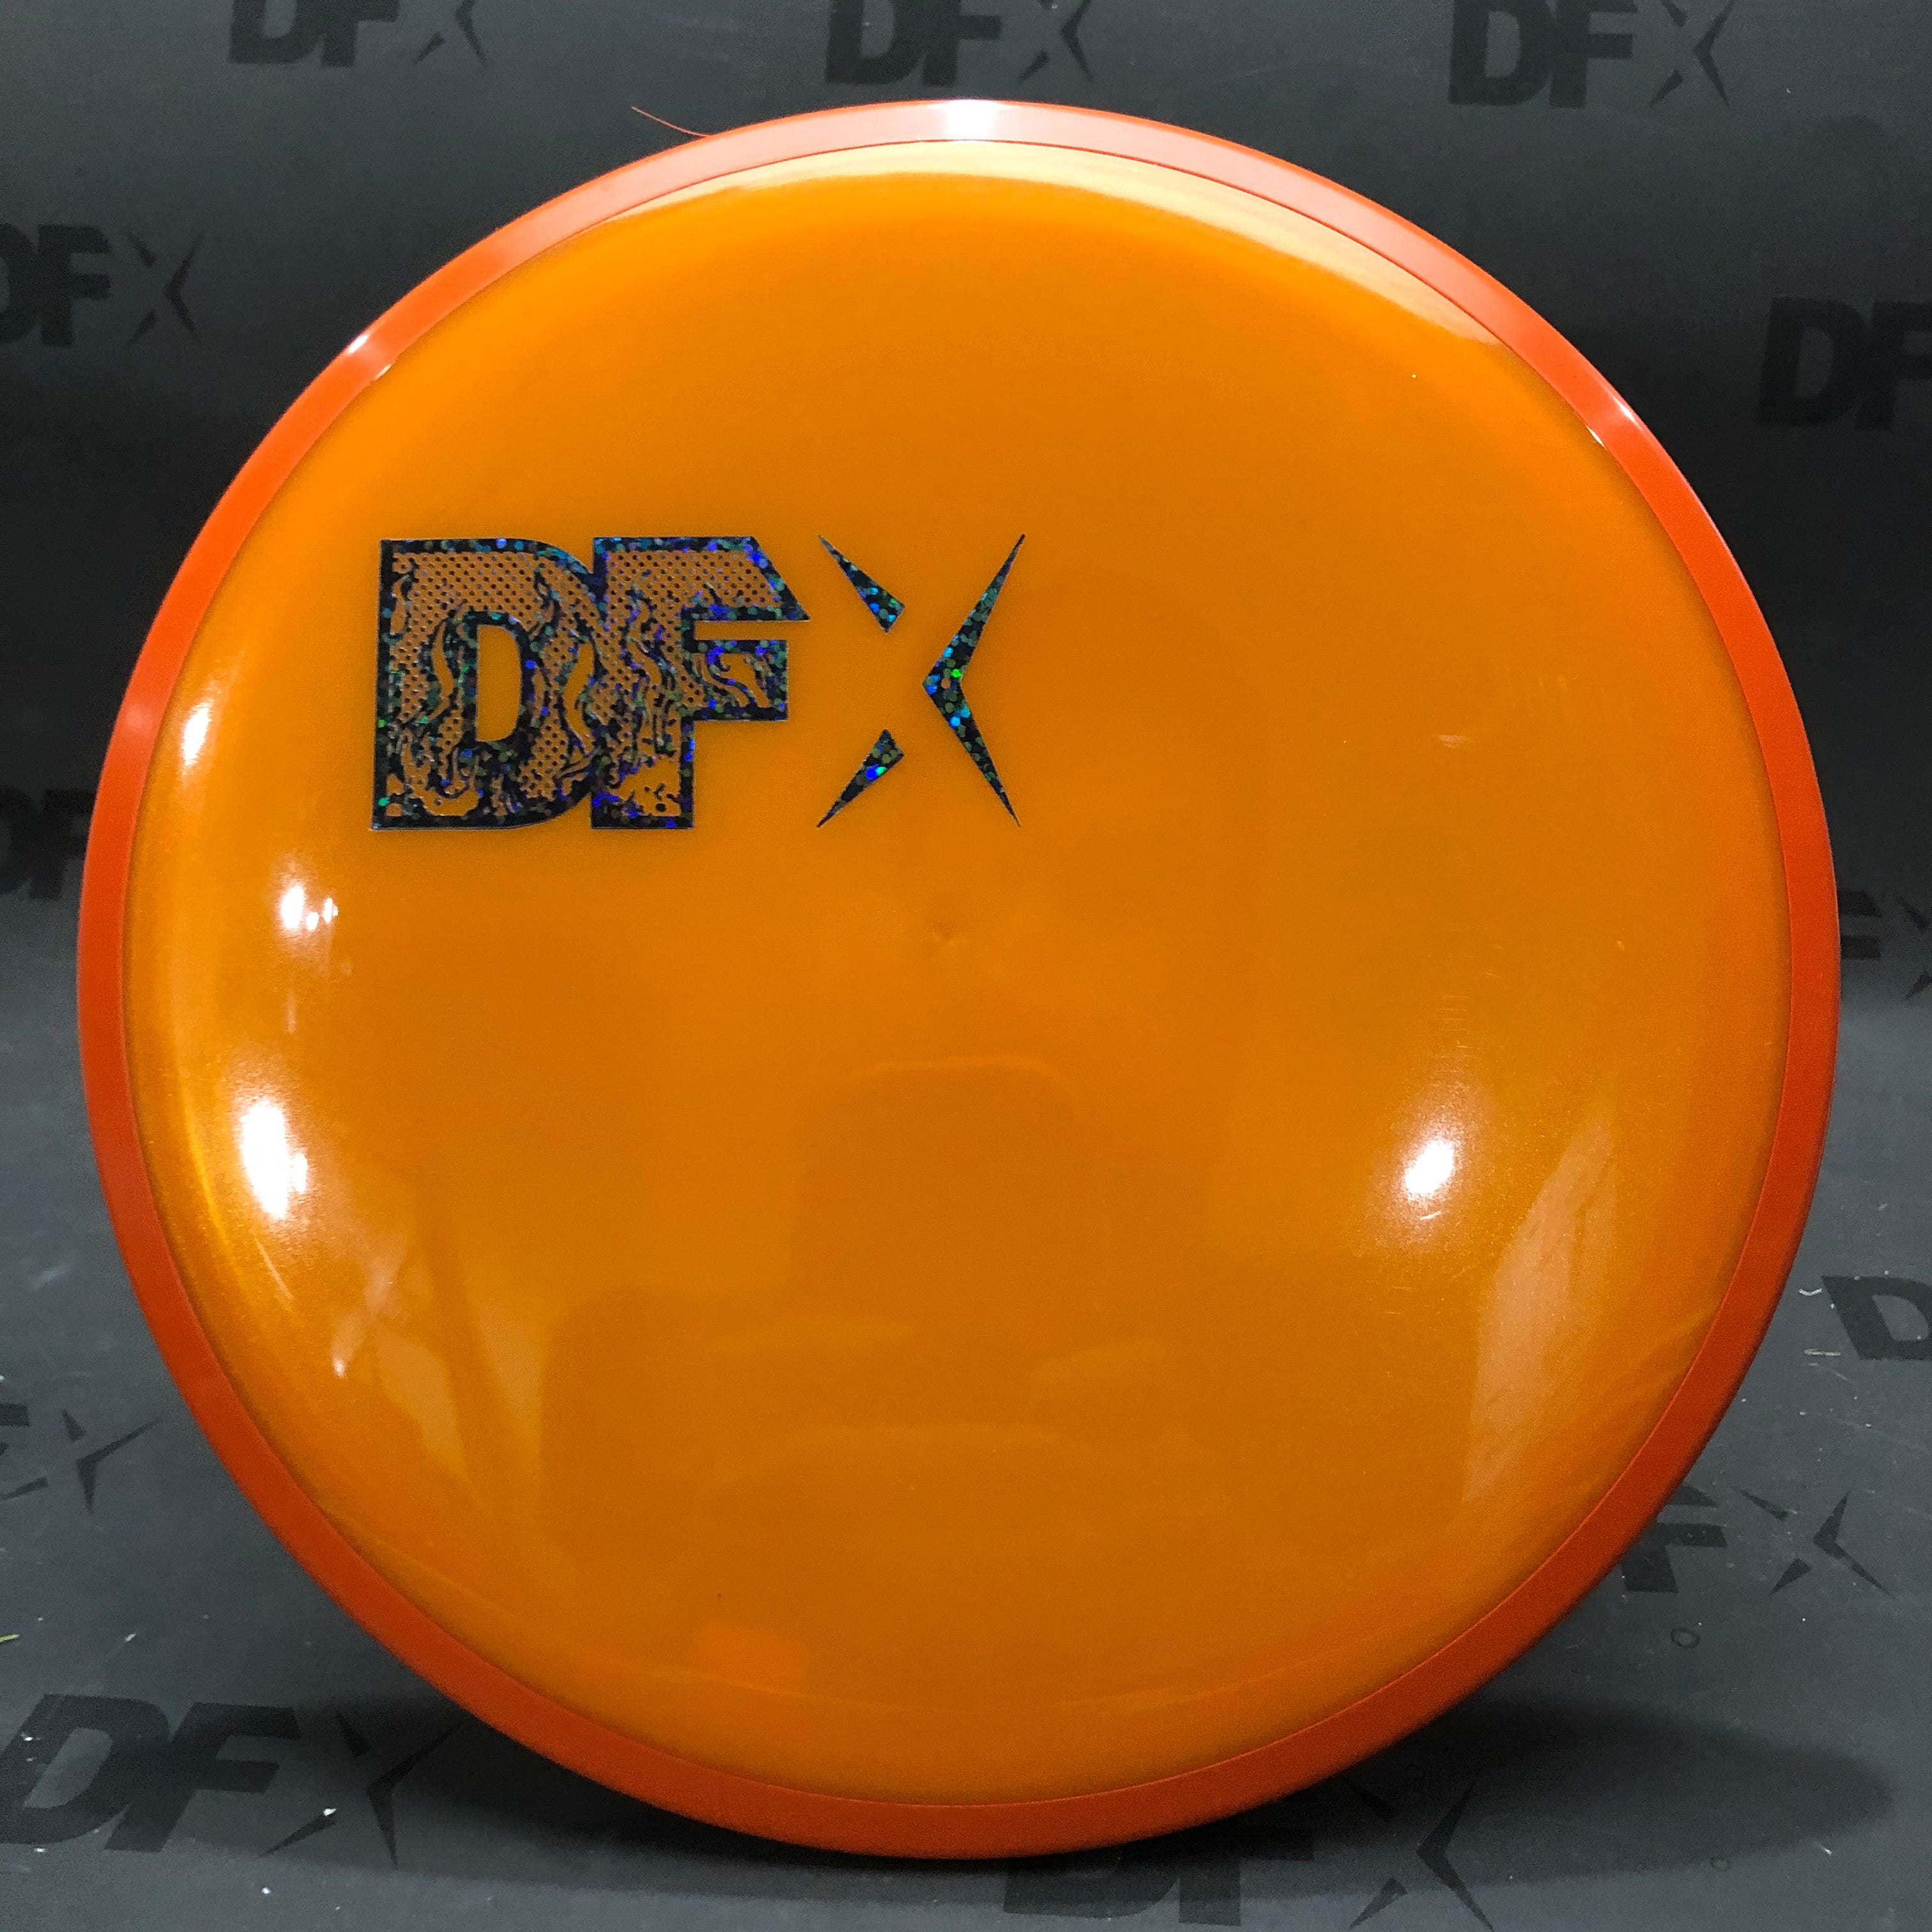 Axiom Plasma Crave - DFX Stamp